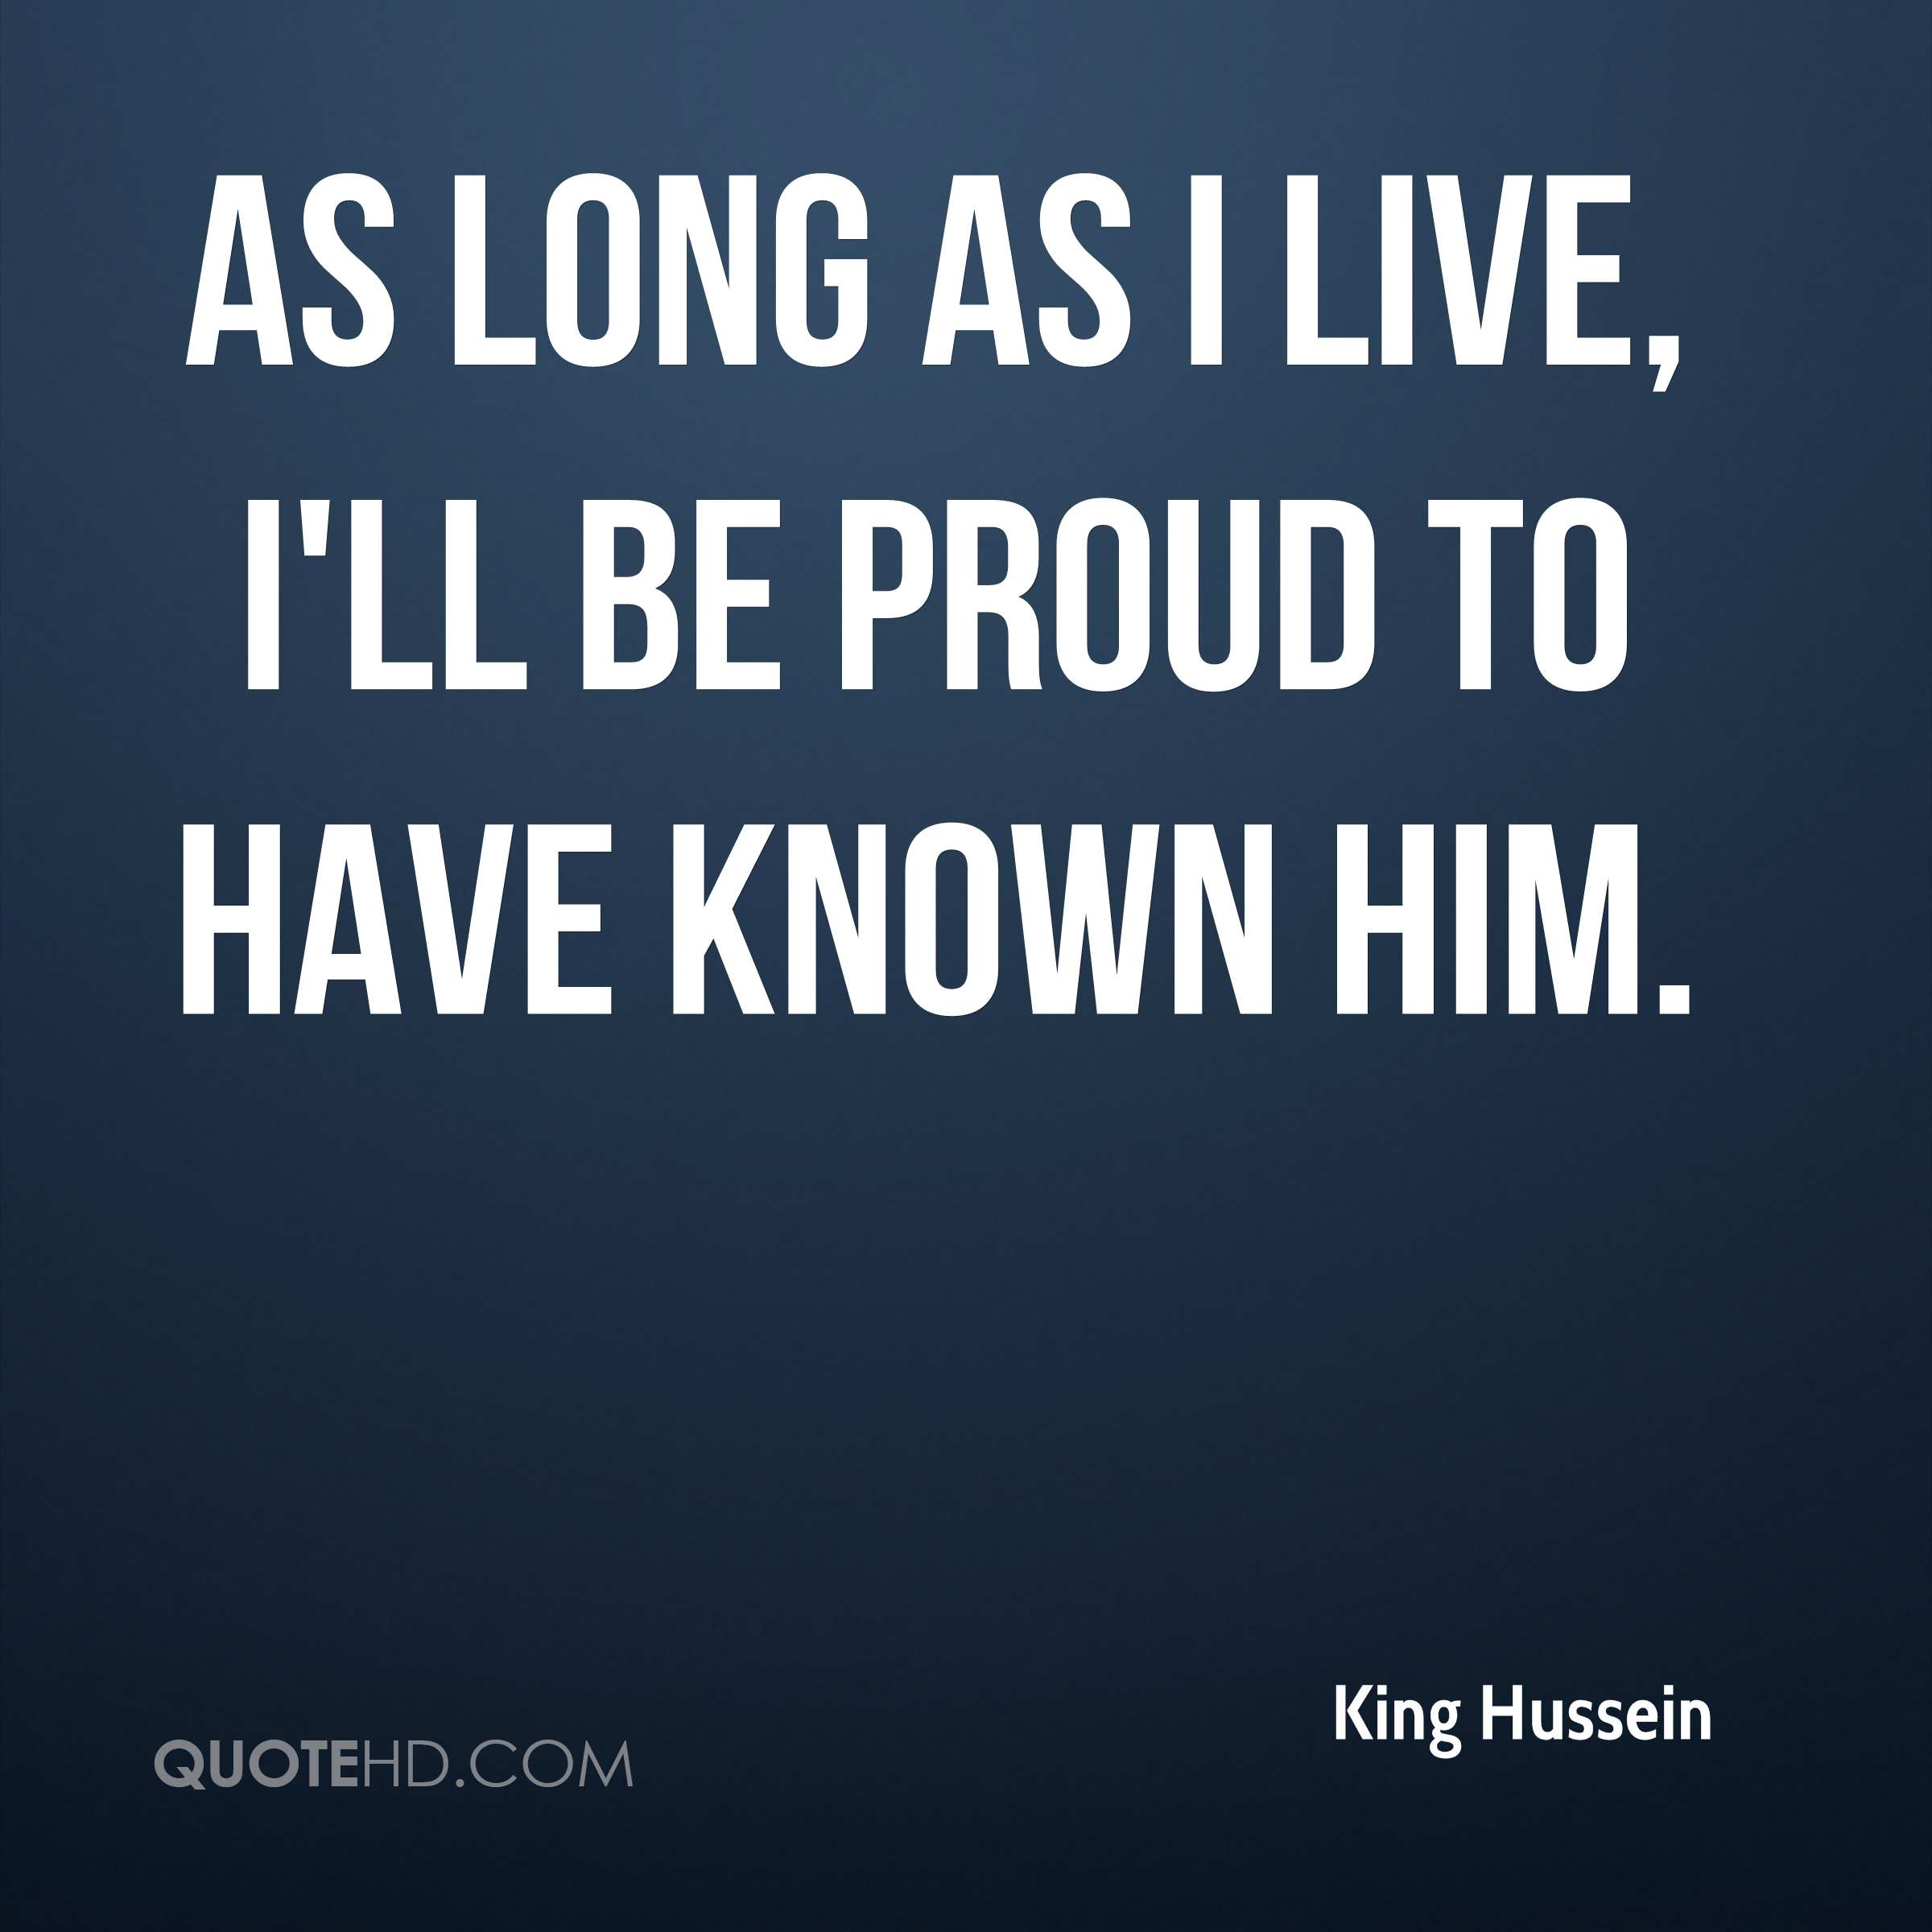 As long as I live, I'll be proud to have known him.